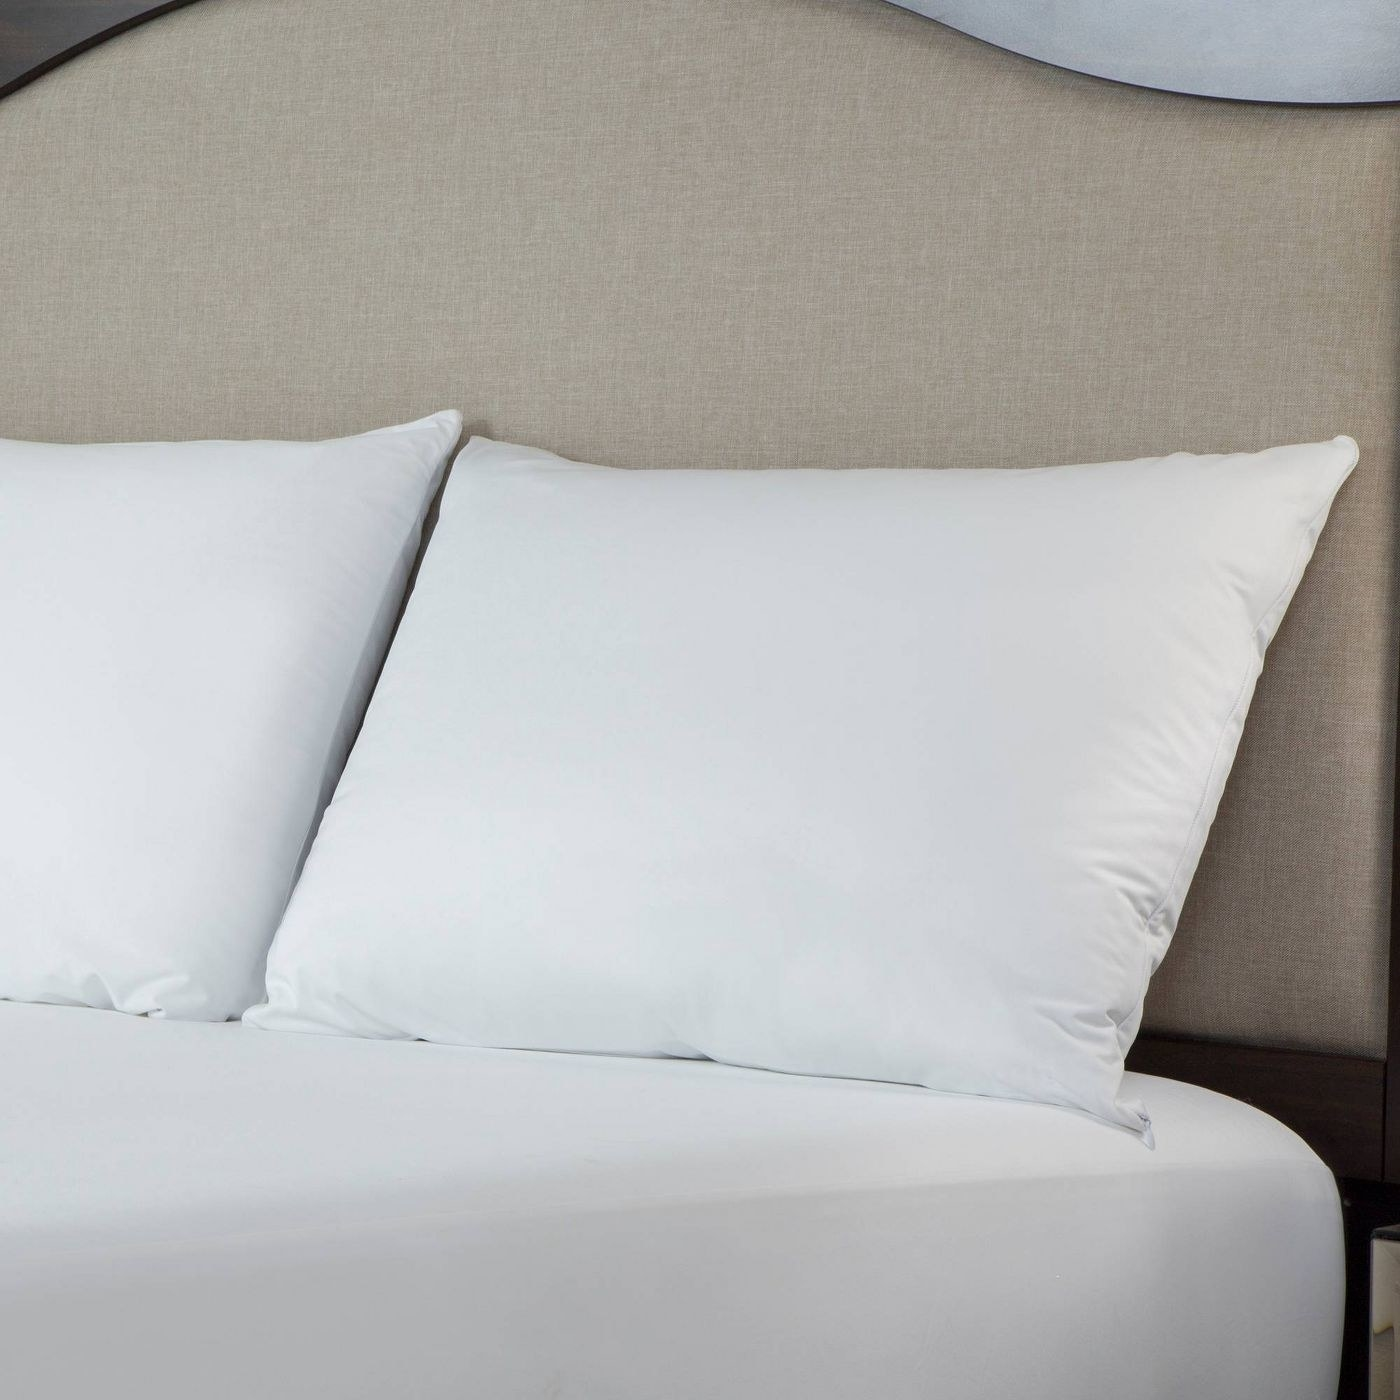 two pillows placed on bed